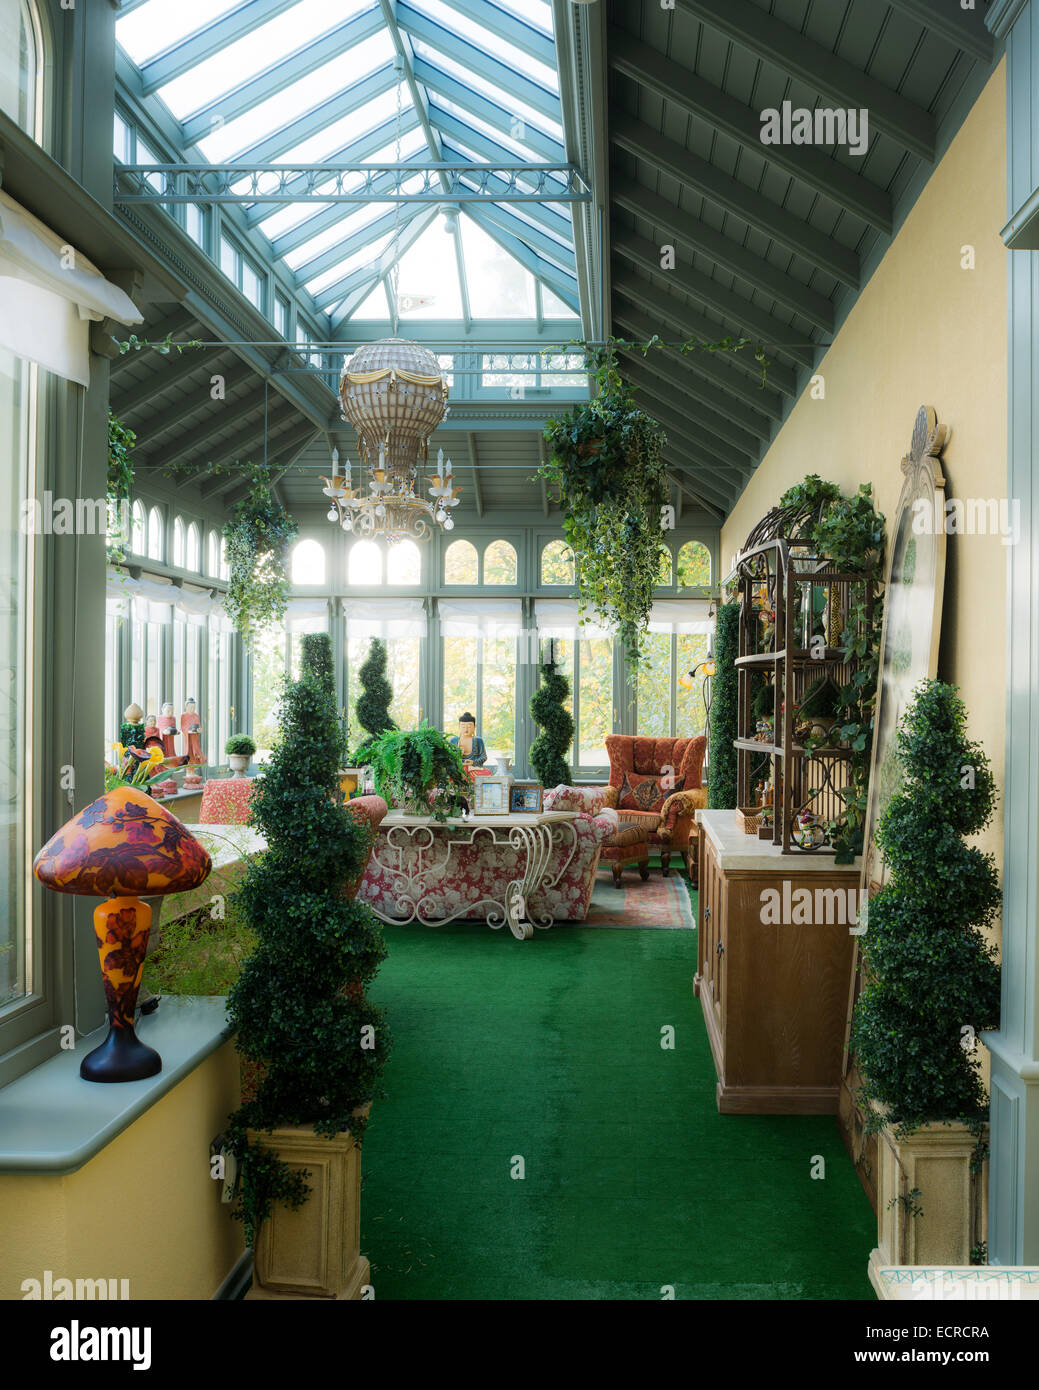 Green carpets and box hedge topiary in orangerie - Stock Image